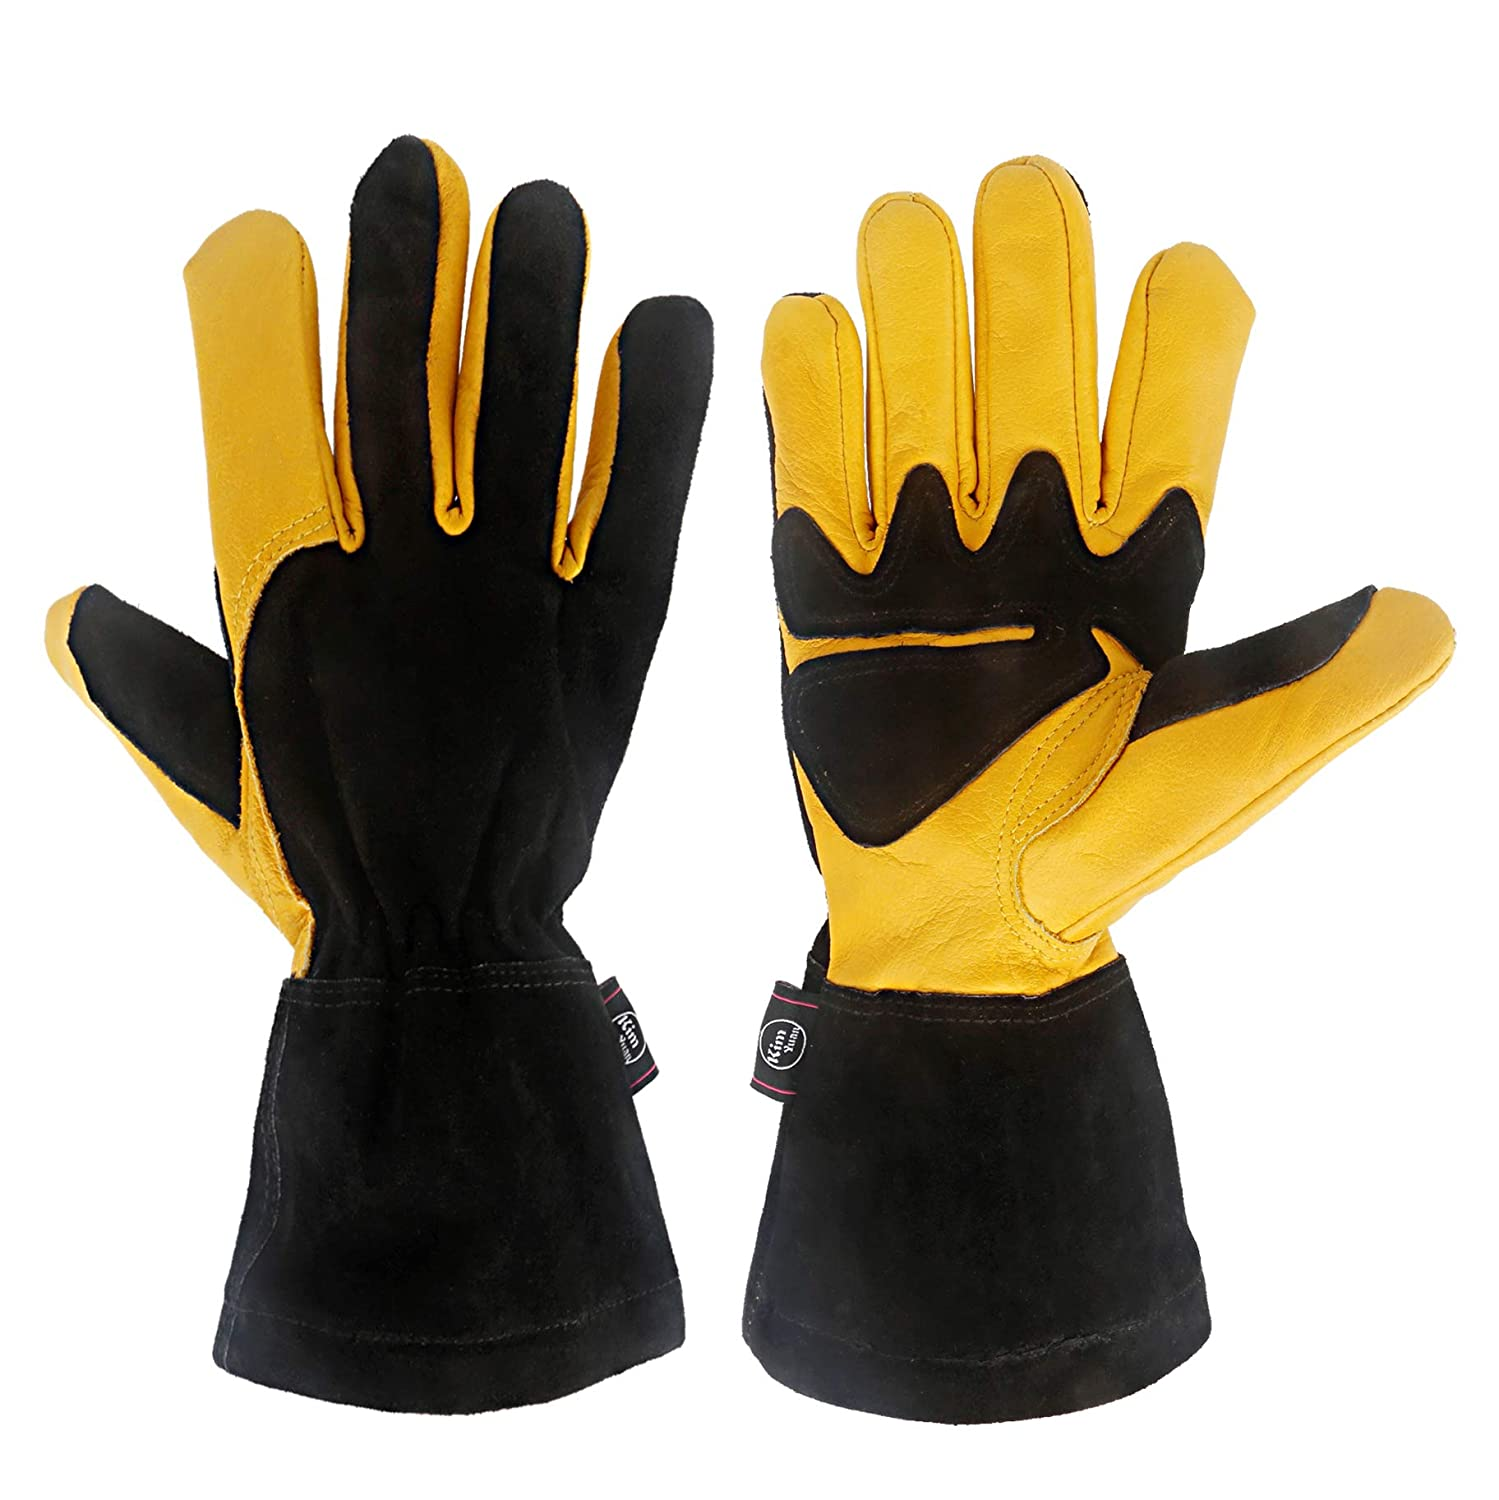 KIM YUAN Leather Gardening Gloves, Anti-Scalding, Heat-Insulating, Comfortable Work Mitts for Oven, Electric Welding, Black-Yellow 14 inches